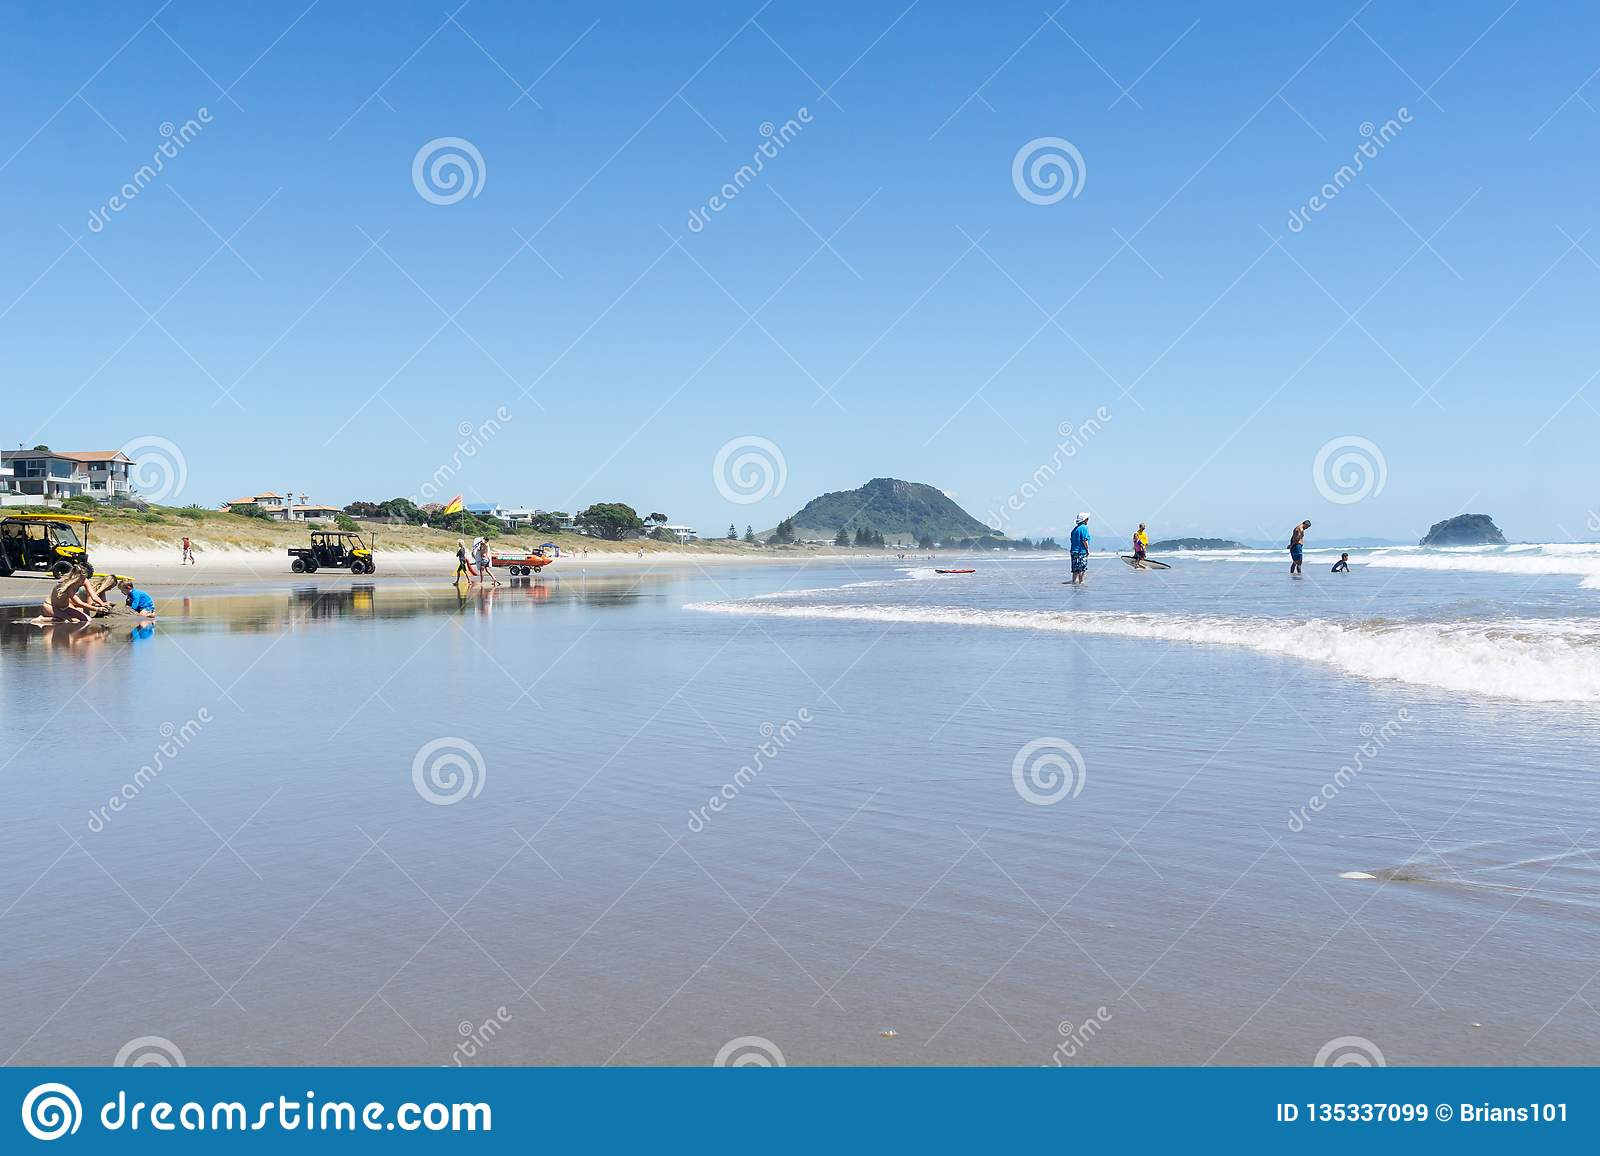 Long View Beautiful Ocean Beach With People Enjoying The Weather And Beach Activities Editorial Stock Image Image Of Ocean Omanu 135337099 Ratio of temperature, wind speed and. dreamstime com